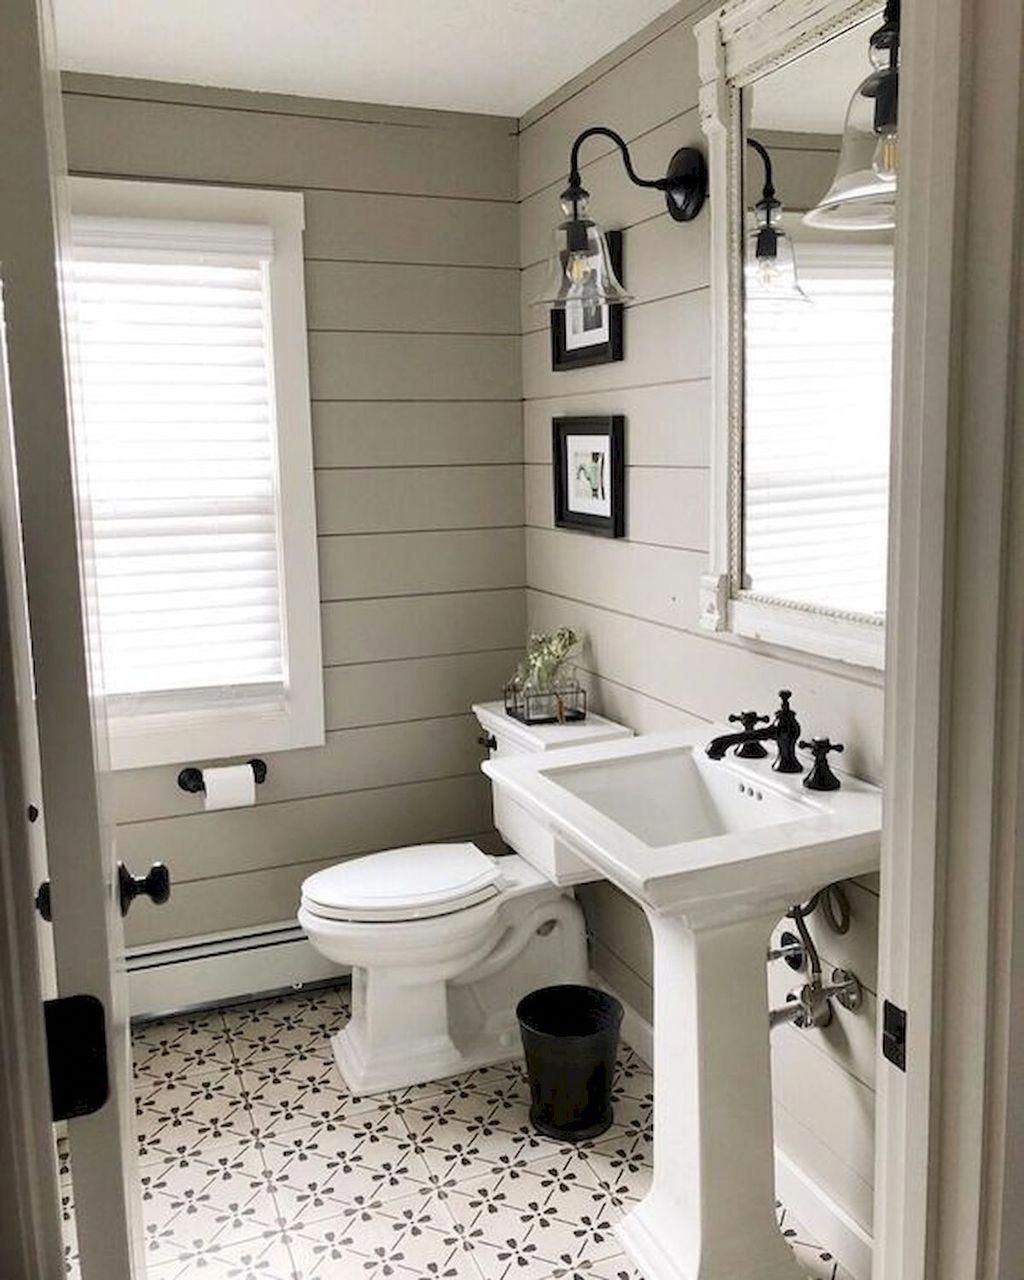 How Much Does A Bathroom Renovation Cost? (With Images